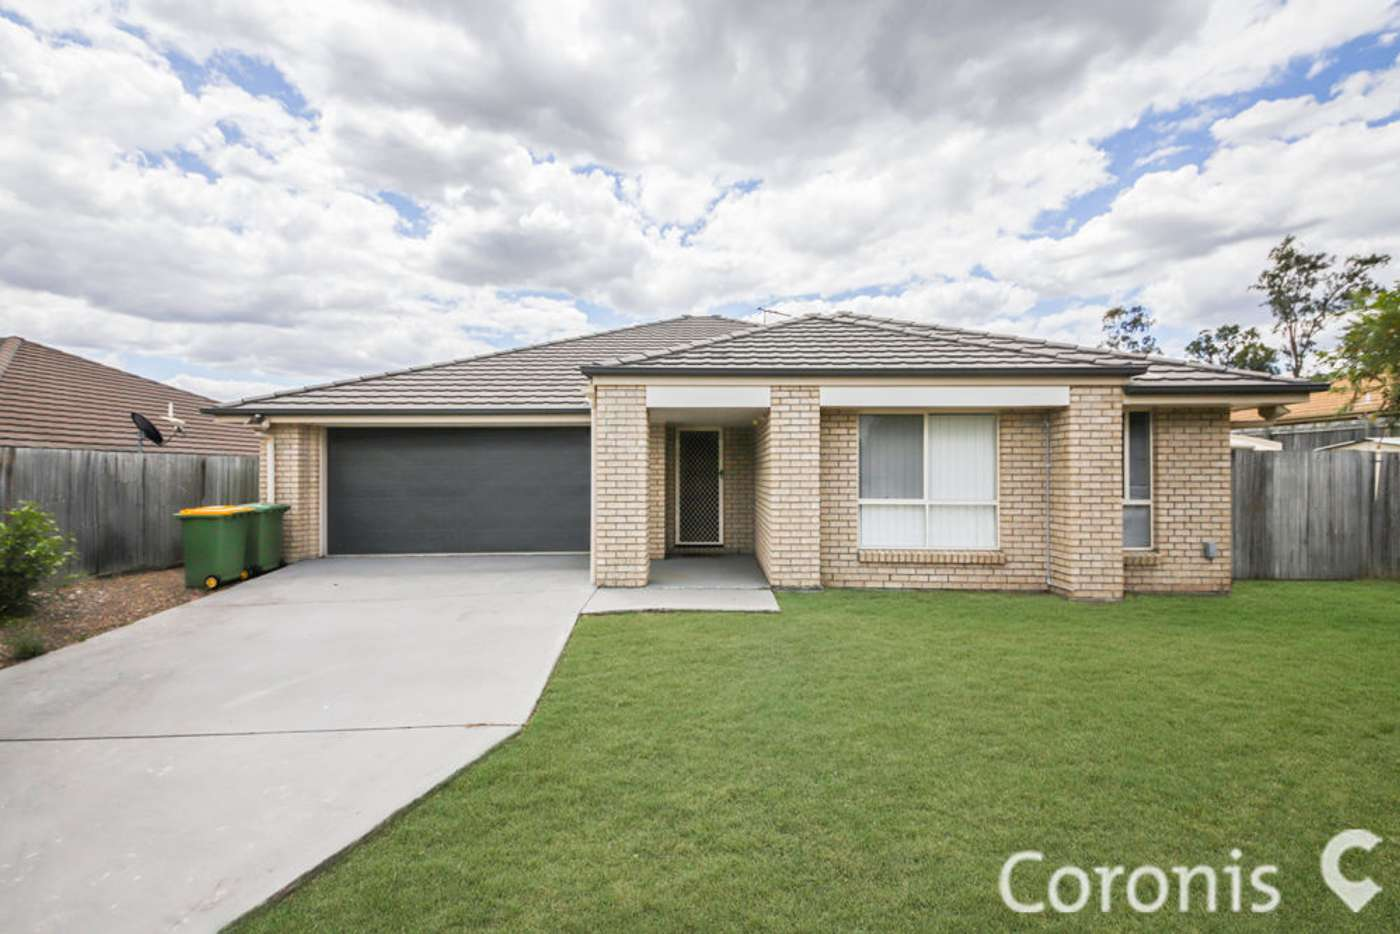 Main view of Homely house listing, 8 Lukin Court, Brassall QLD 4305